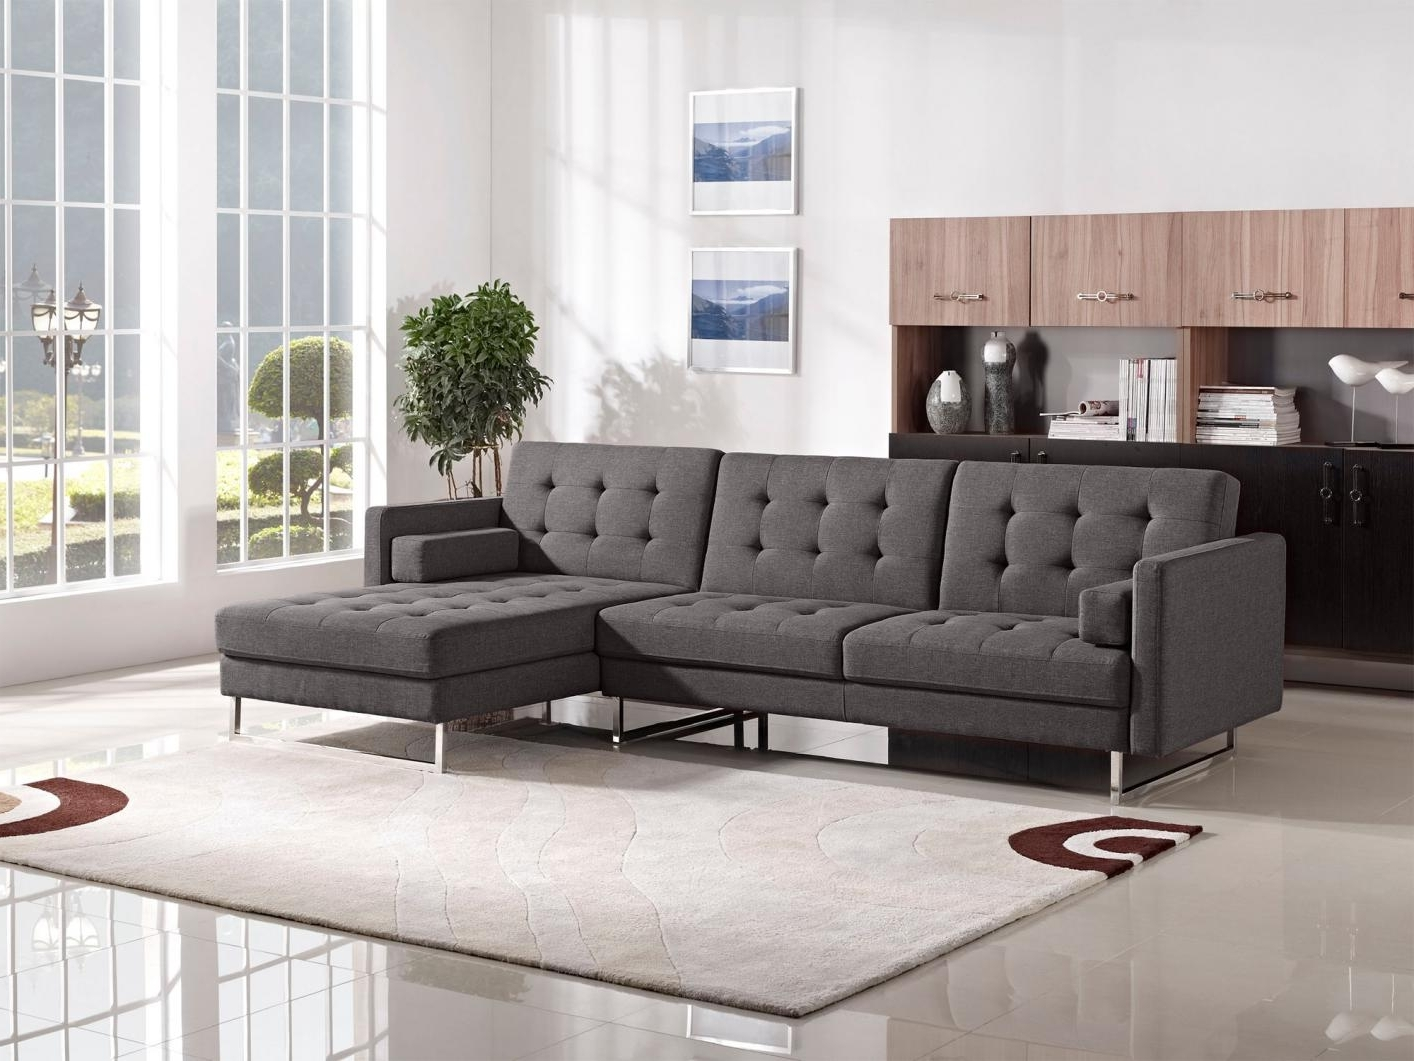 Modern L Shaped White Leather Sectional Sofa Bed Chrome Metal Base Regarding 2017 The Bay Sectional Sofas (View 6 of 15)